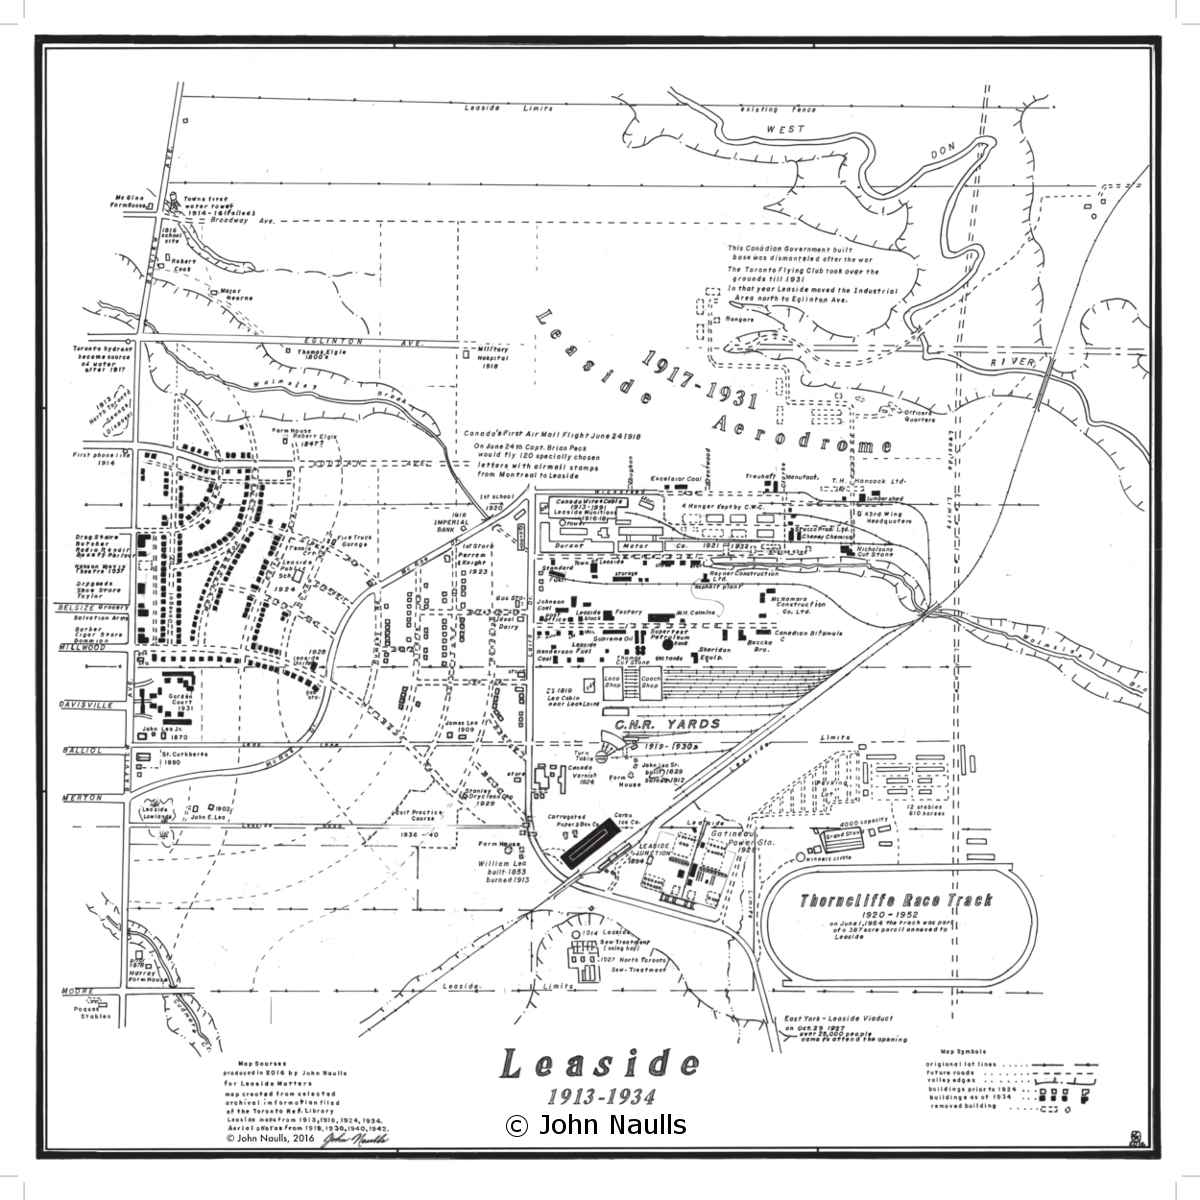 Map of Leaside 1913-1934